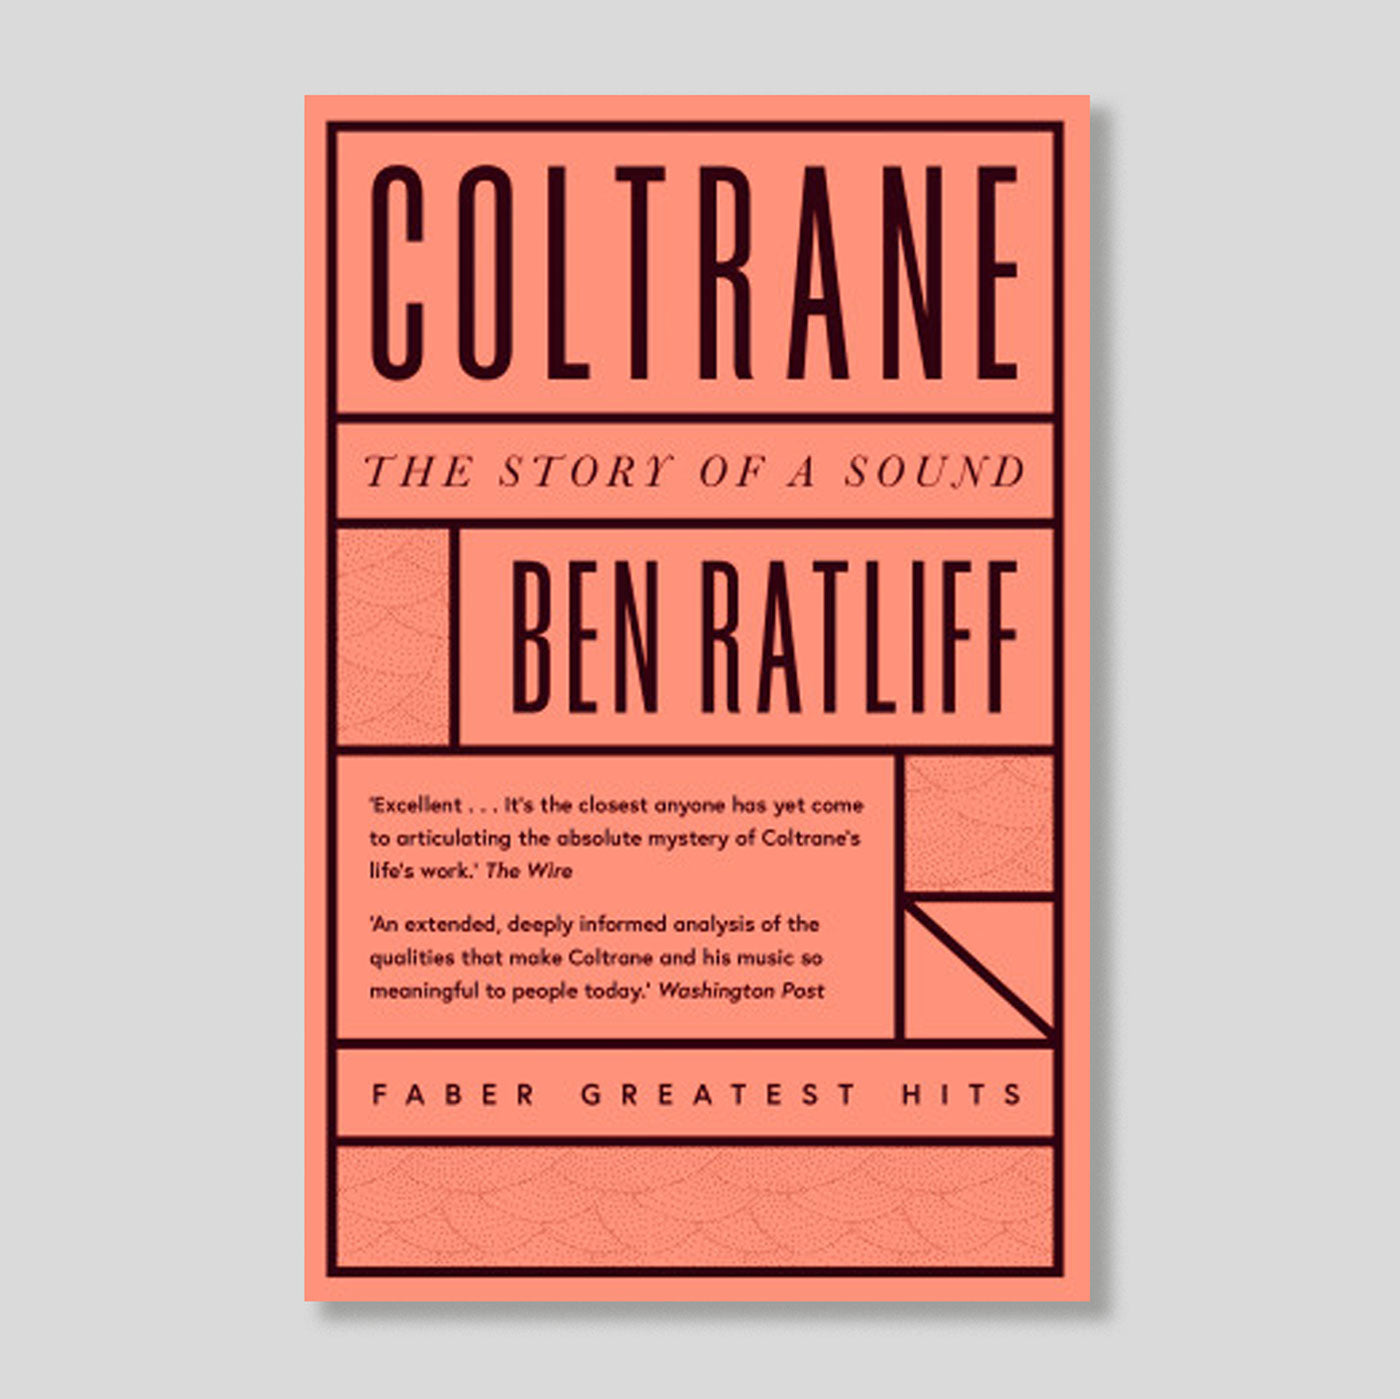 Coltrane - The Story Of A Sound | Ben Ratliff ? Colours May Vary